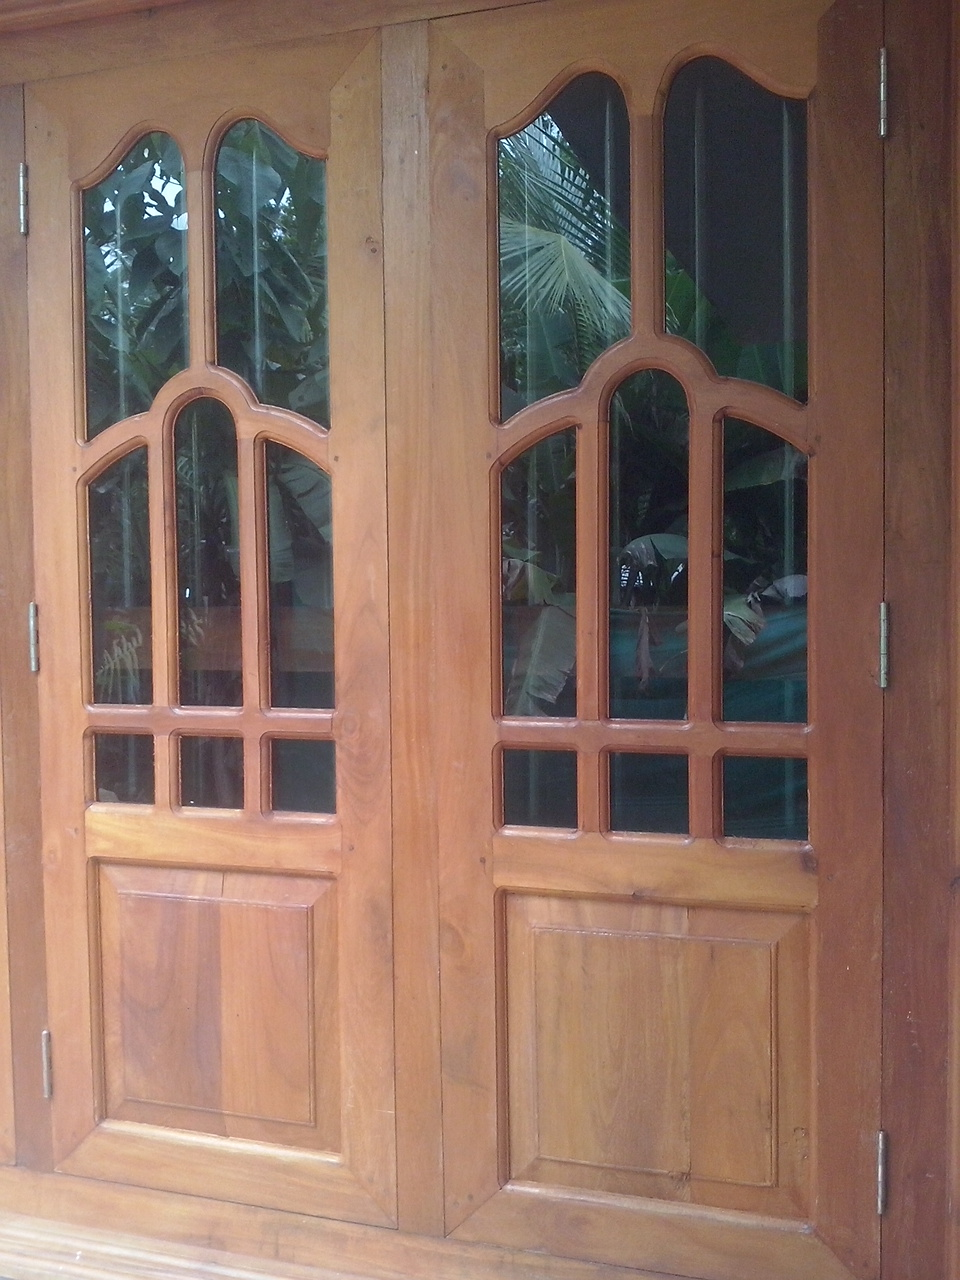 Bavas wood works kerala style wooden window door designs - Window design for home ...